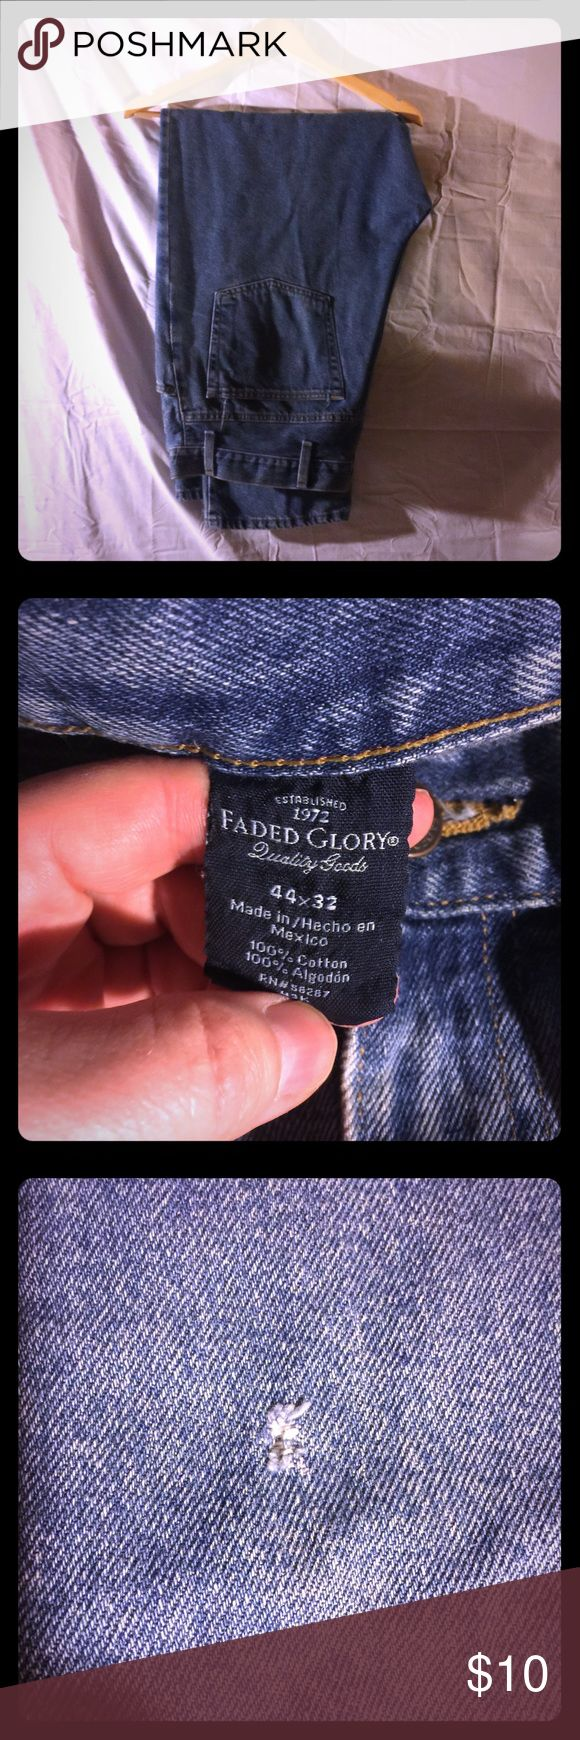 Men's Faded Glory Jeans 44x32 Men's Jeans by Faded Glory size 44x32. Good used condition. One very small tear on left slightly above knee. See photo #3 No other rips or stains. No trades. Reasonable offers welcome. Faded Glory Jeans Relaxed